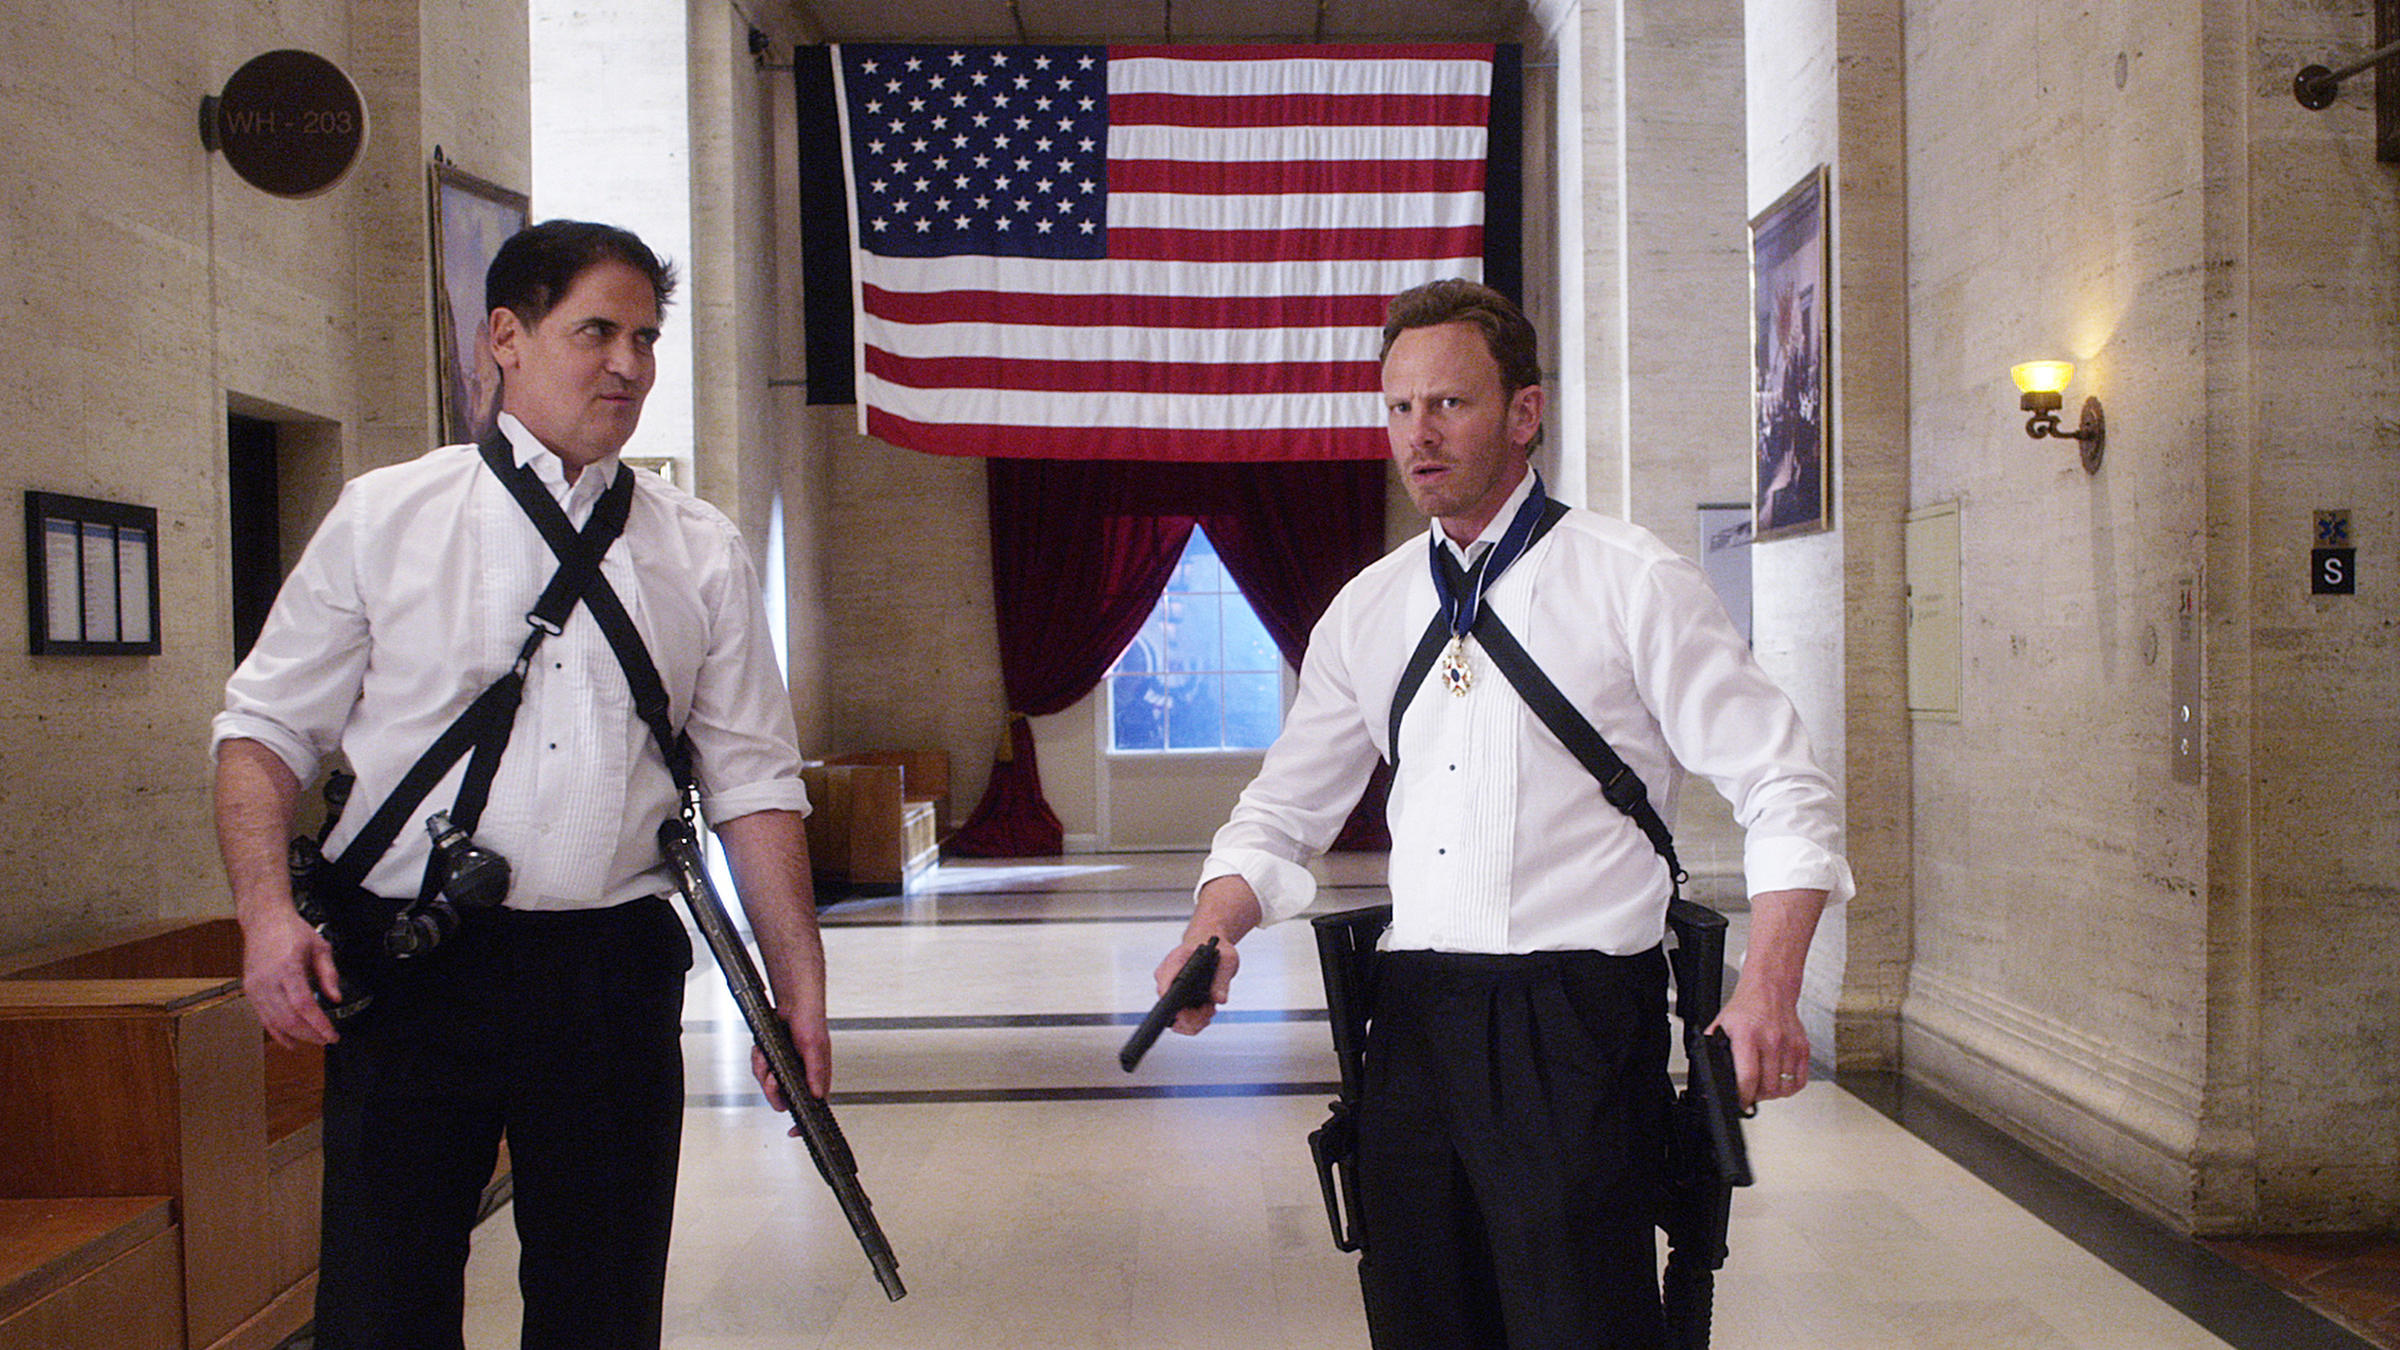 Fin Shepard (Ian Ziering) and the US President (Mark Cuban) defend the White House in Sharknado 3: Oh Hell No! (2015)